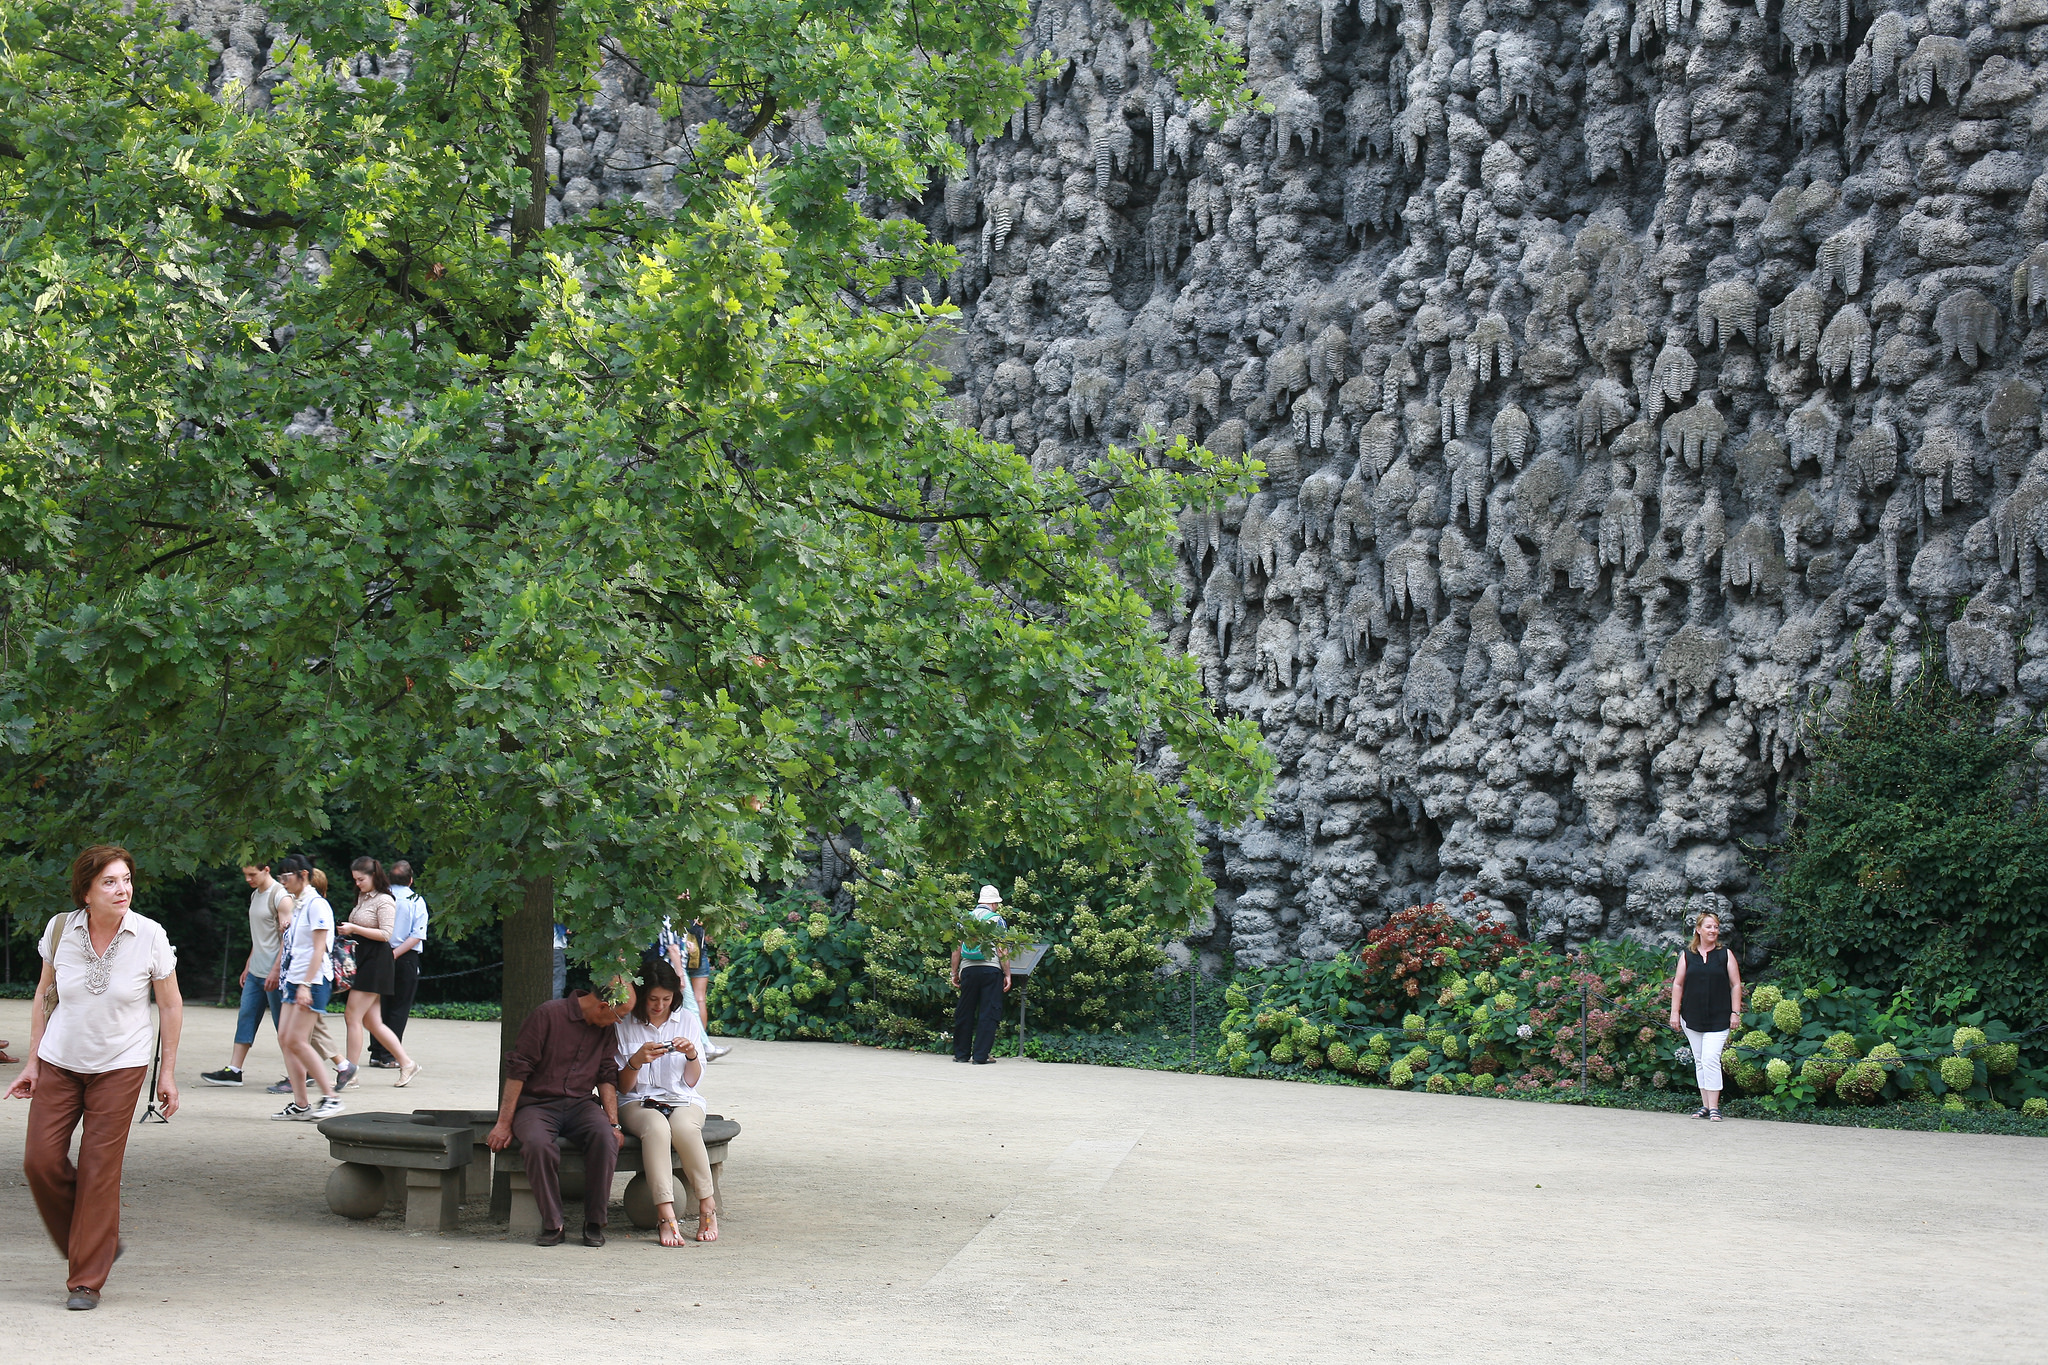 The Grotto at Wallenstein Gardens in Prage